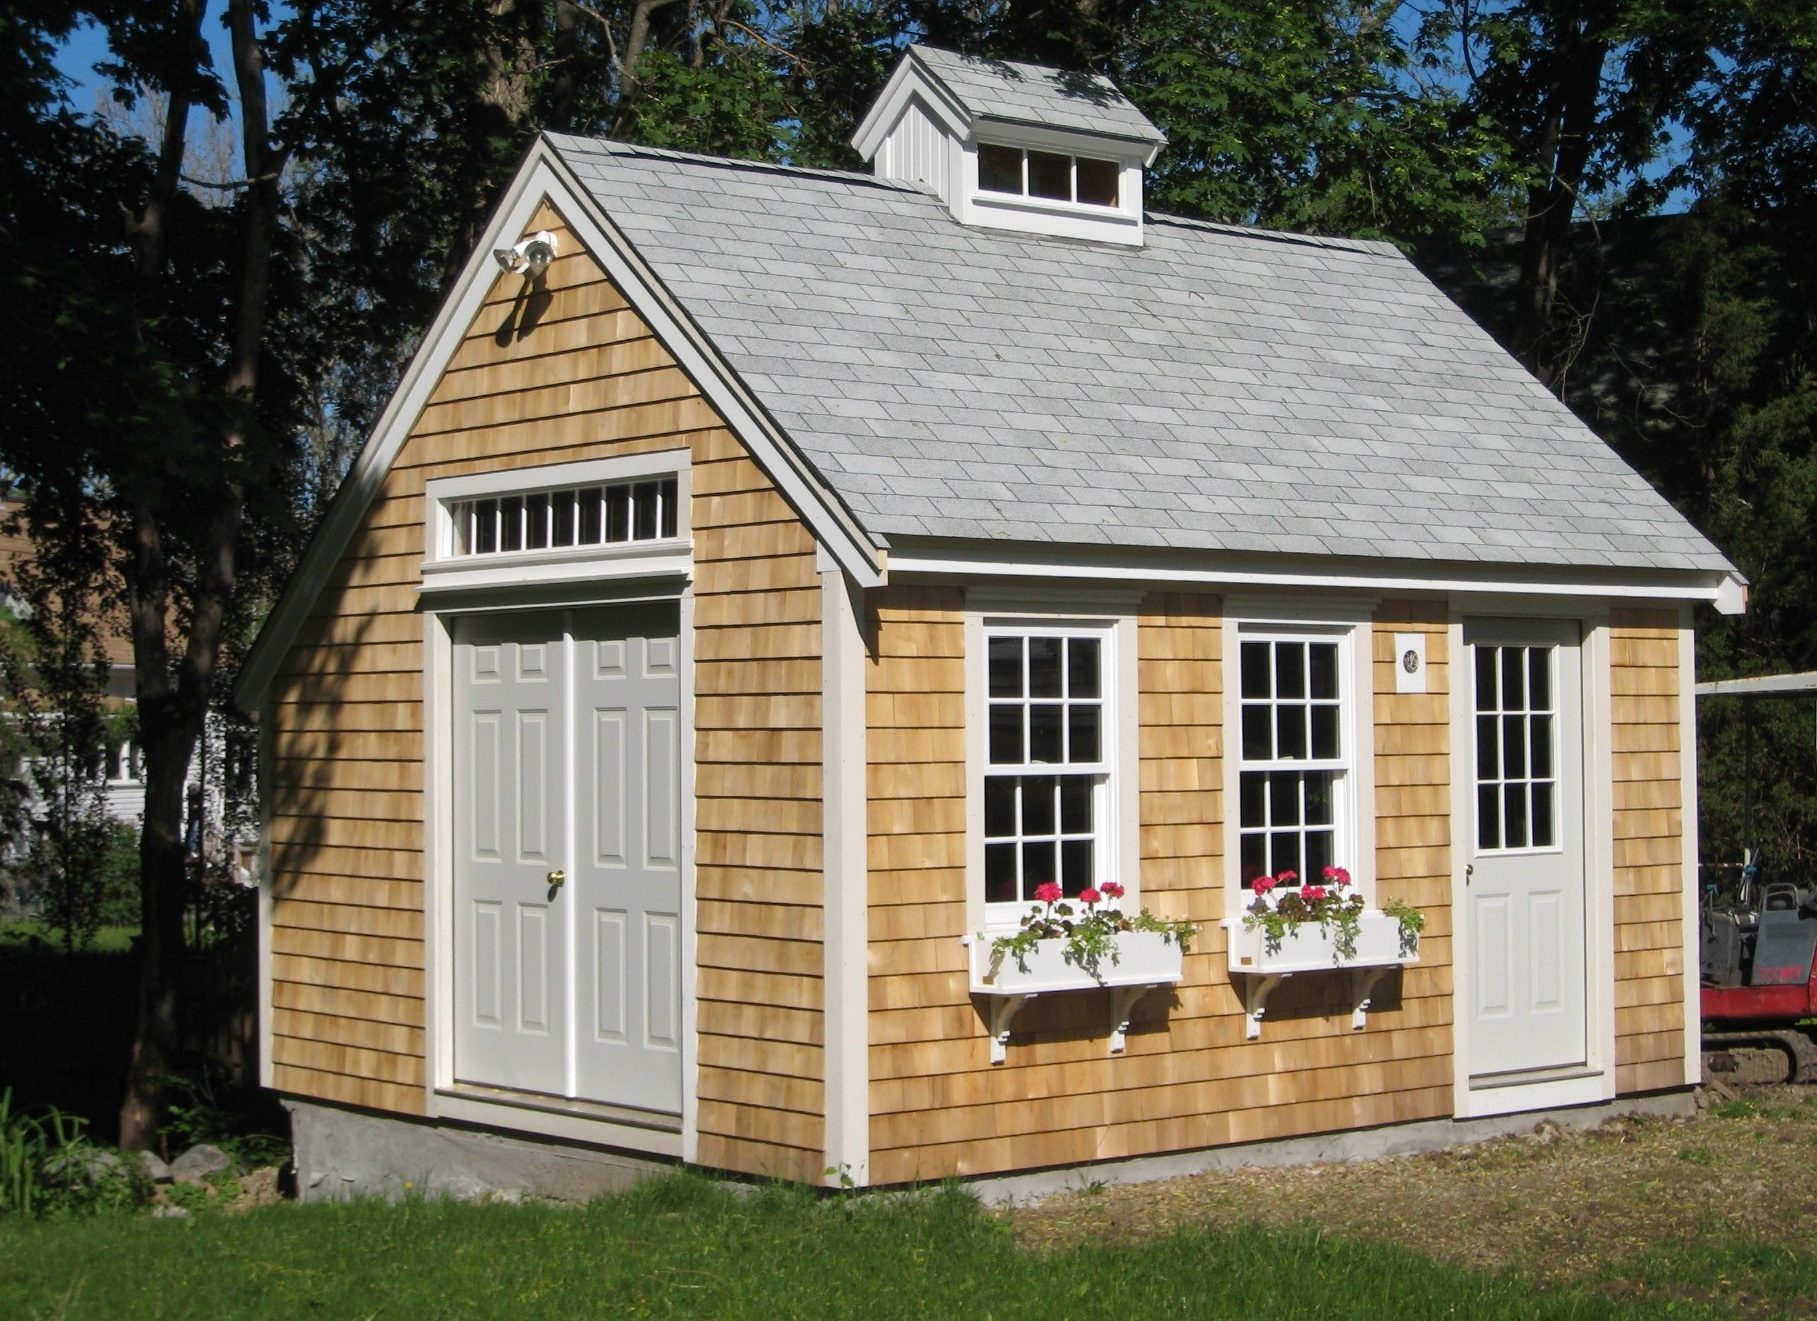 Fairytale backyards 30 magical garden sheds for Small sheds for sale